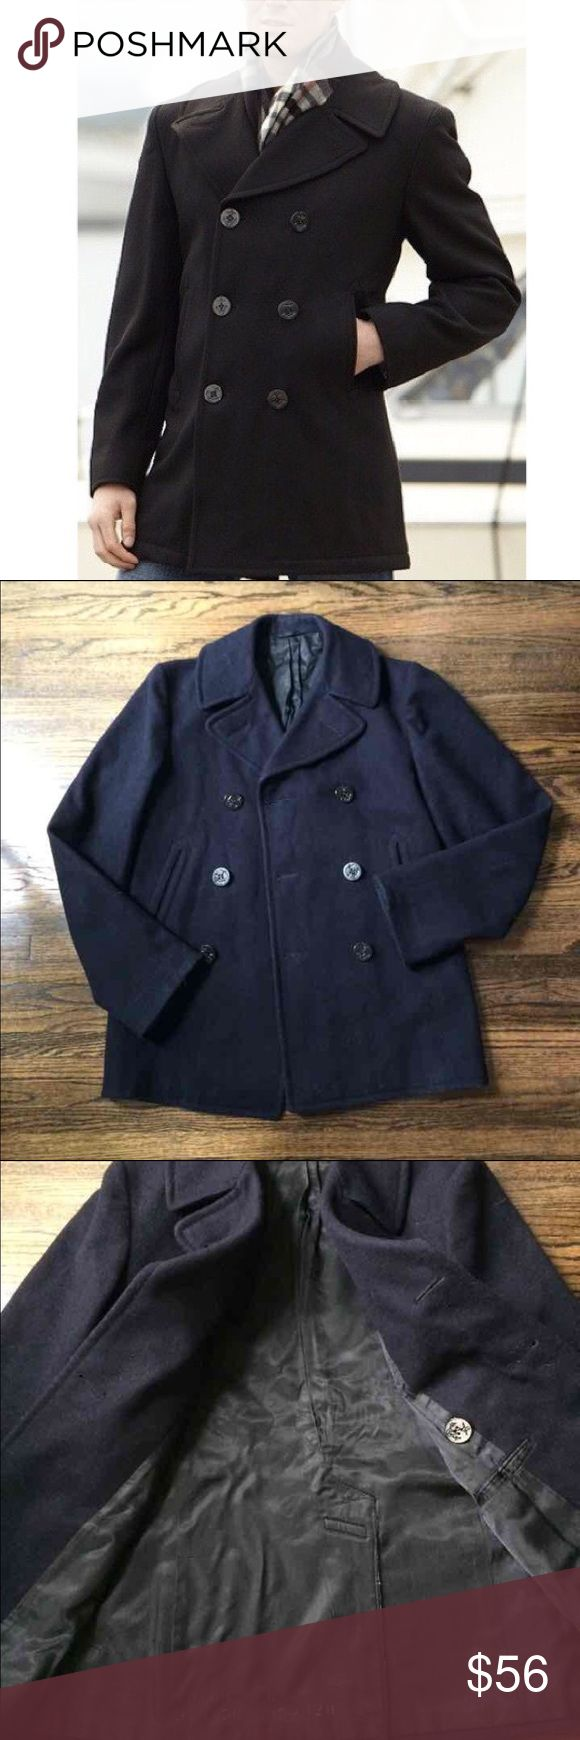 Navy Army Surplus Peacoat Awesome condition. Gently worn. Army Surplus Peacoat. Fits a M. Navy colored Peacoat. Jackets & Coats Pea Coats